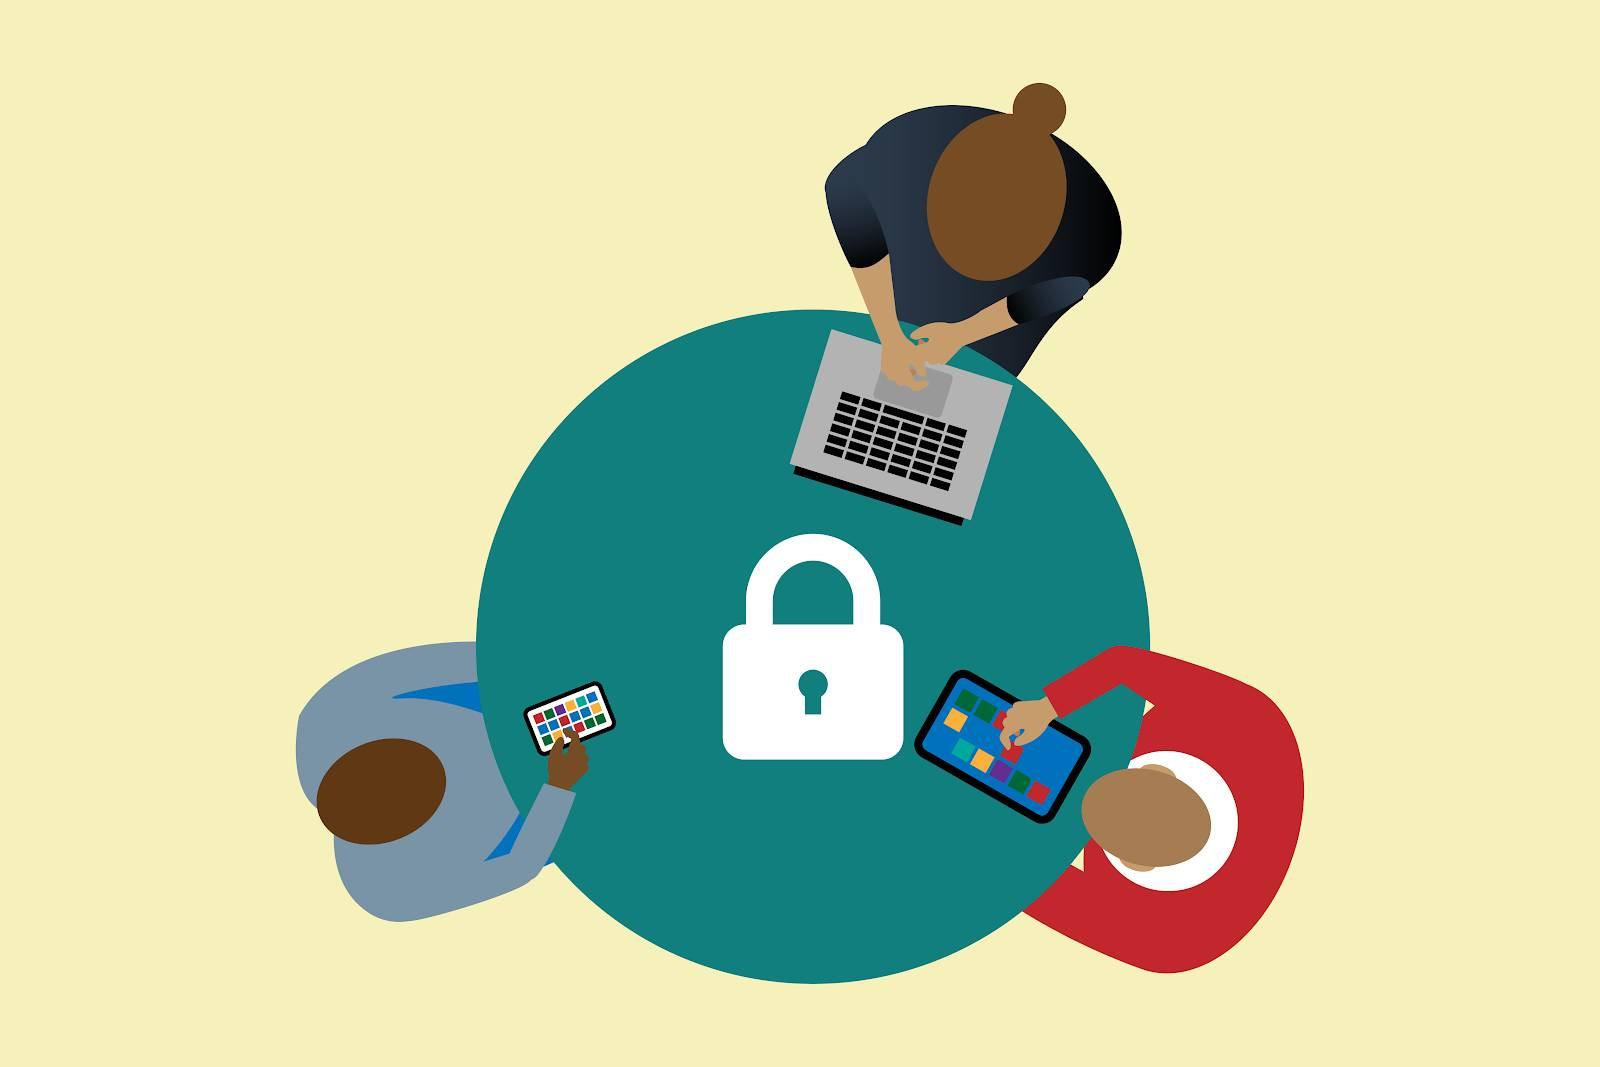 Image of a circular table with users around it each with a laptop, mobile phone, tablet, and a padlock image in the middle.